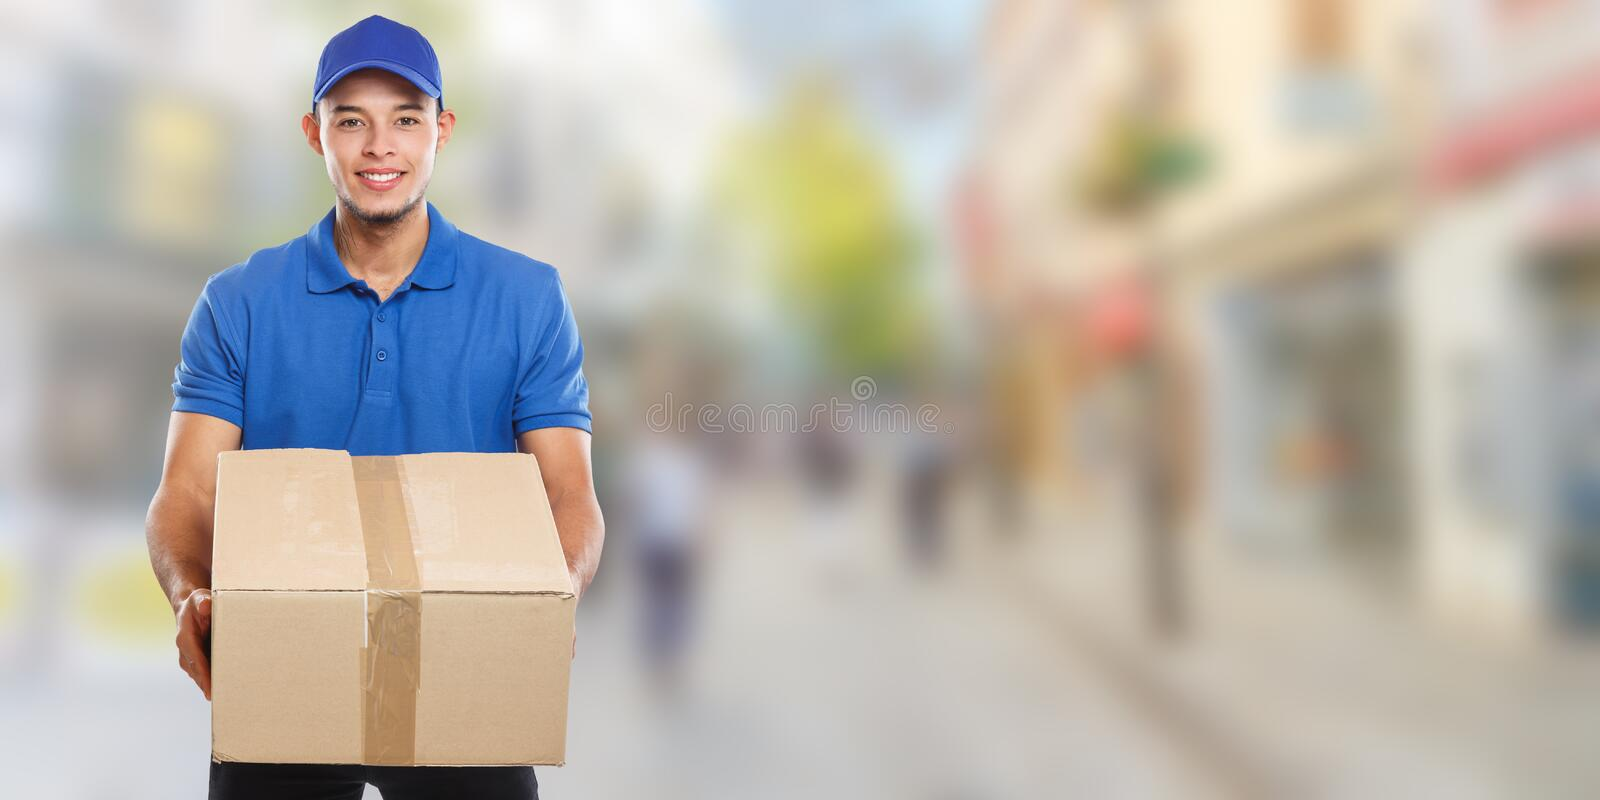 Parcel delivery service box package order delivering job young latin man town banner copyspace copy space royalty free stock photos